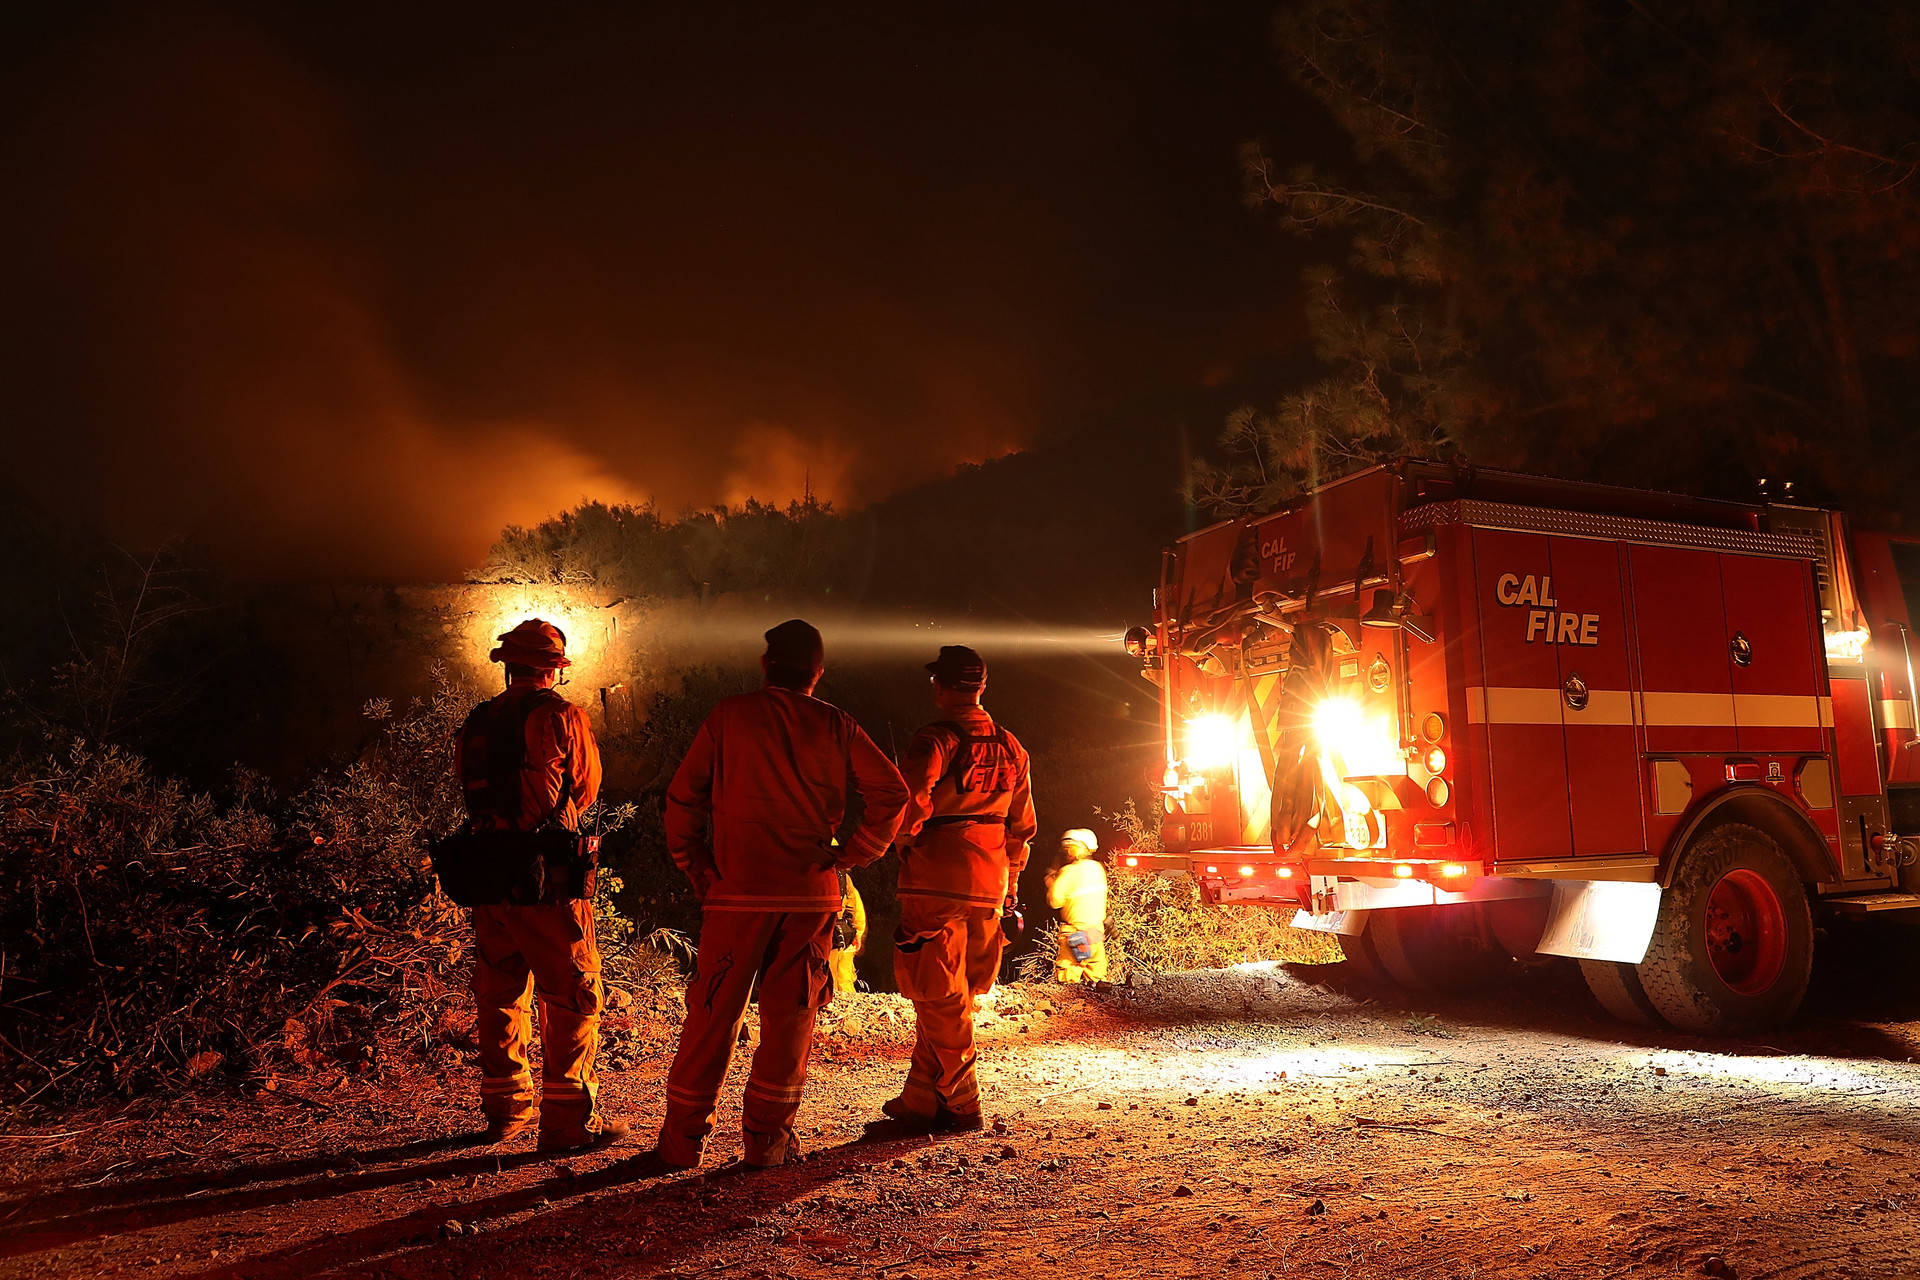 A Cal Fire crew monitors a firing operation while battling the Mendocino Complex Fire on Aug. 7 near the community of Lodoga. Justin Sullivan/Getty Images